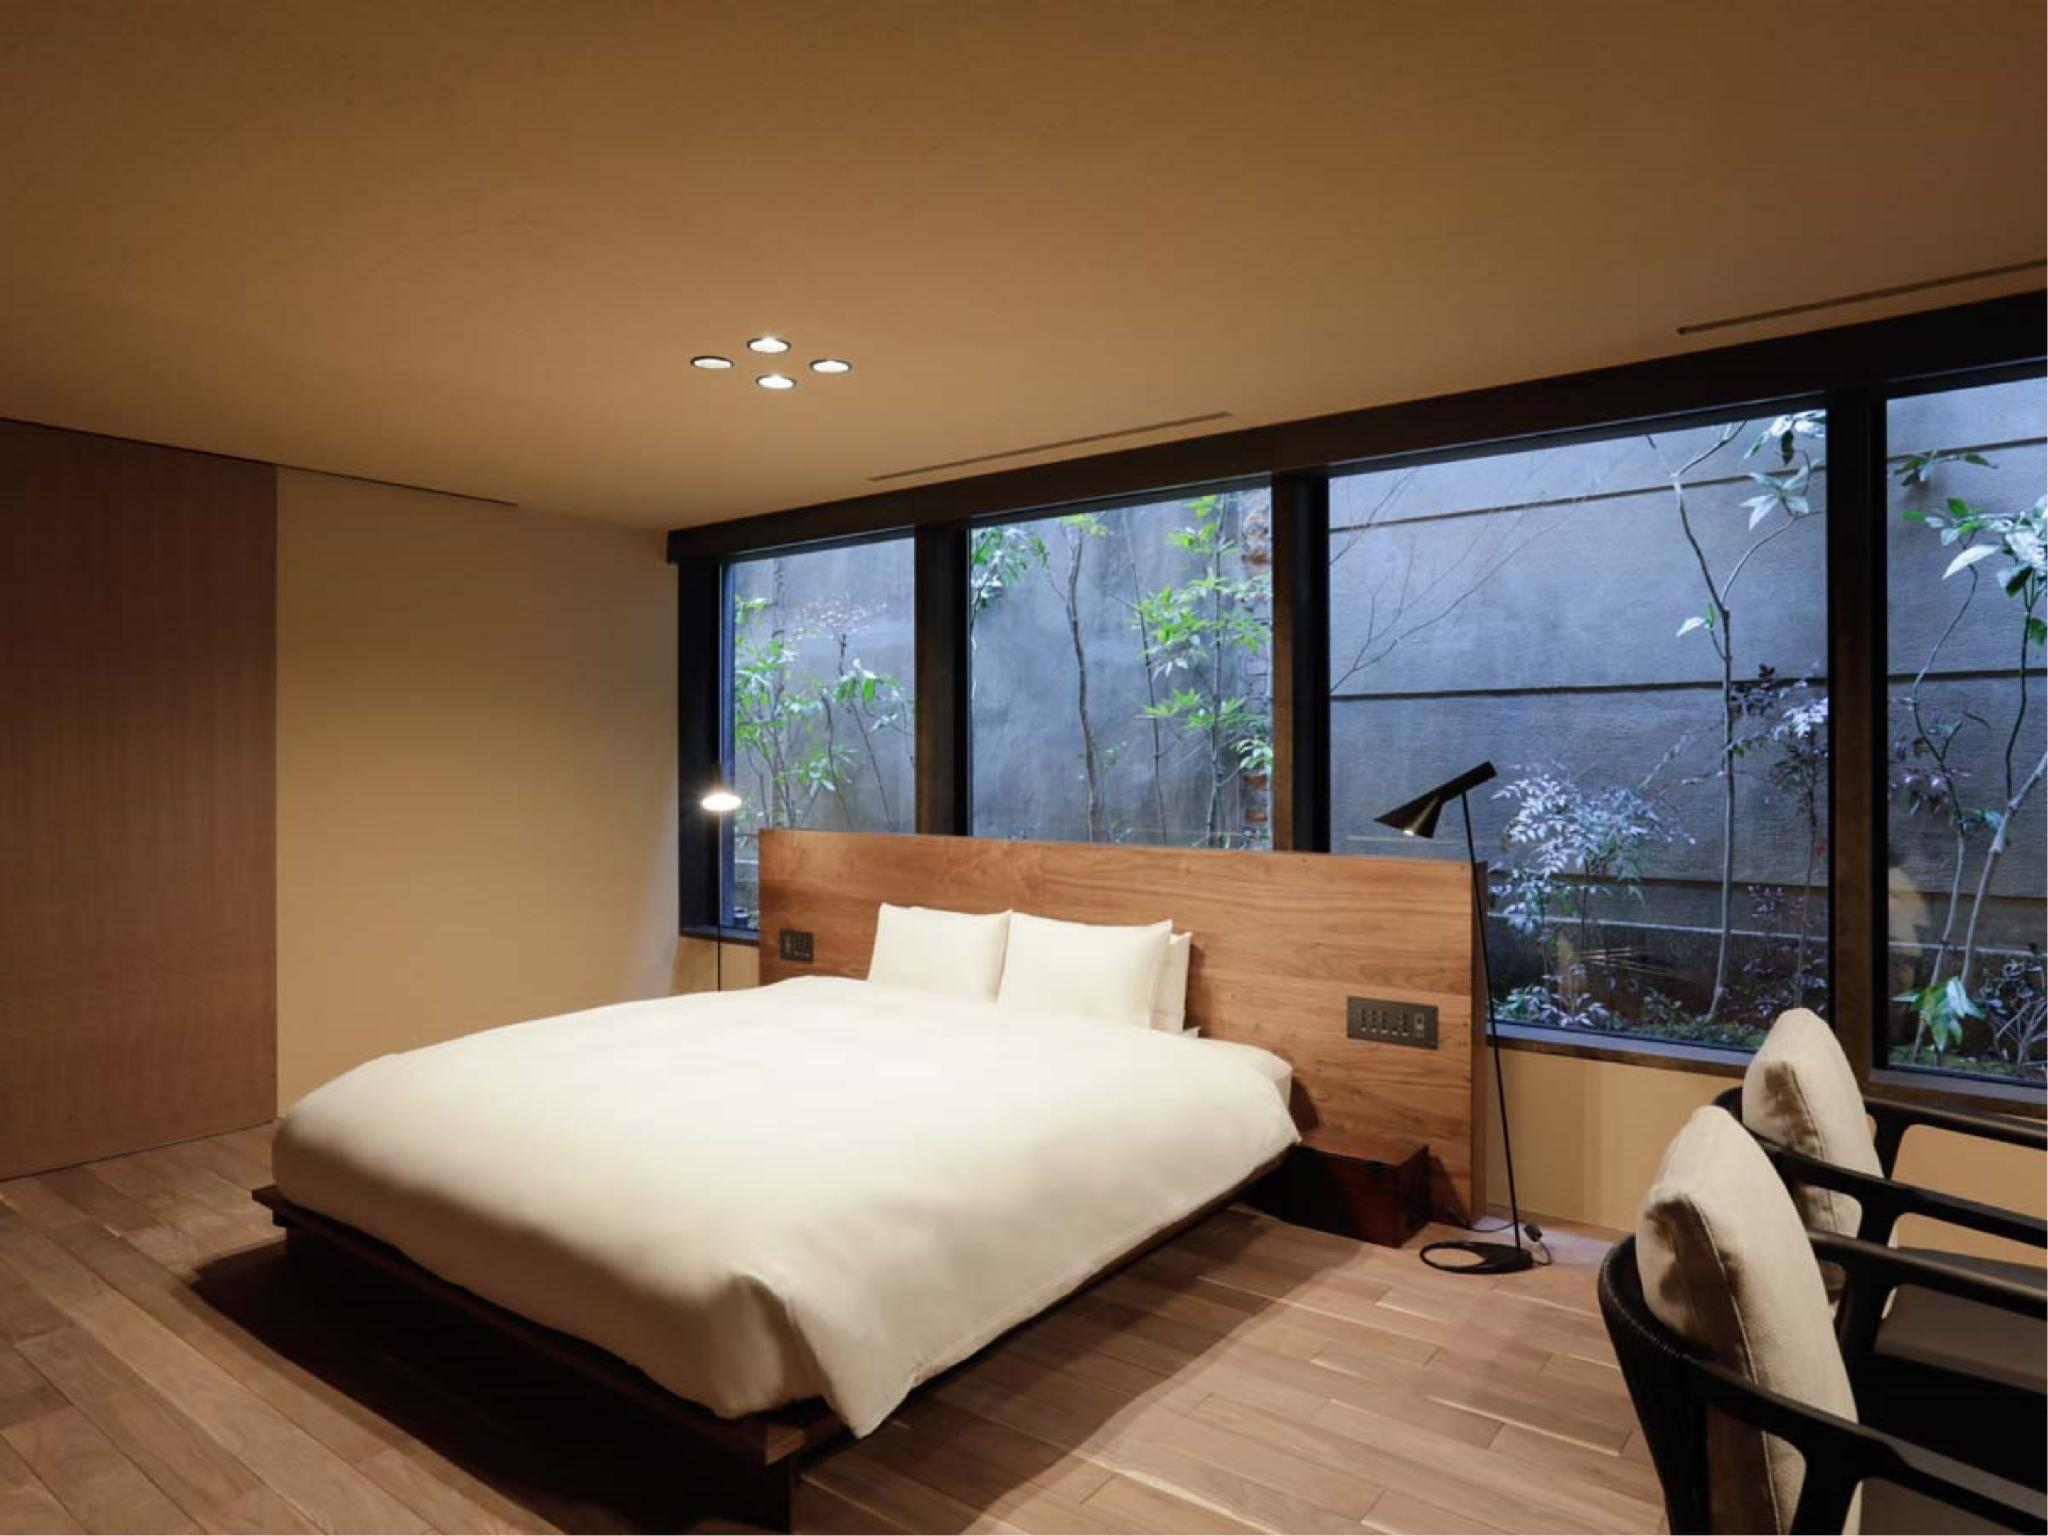 Deluxe King Room with Courtyard View Semi Open-air Bath (No. 201, New Building)